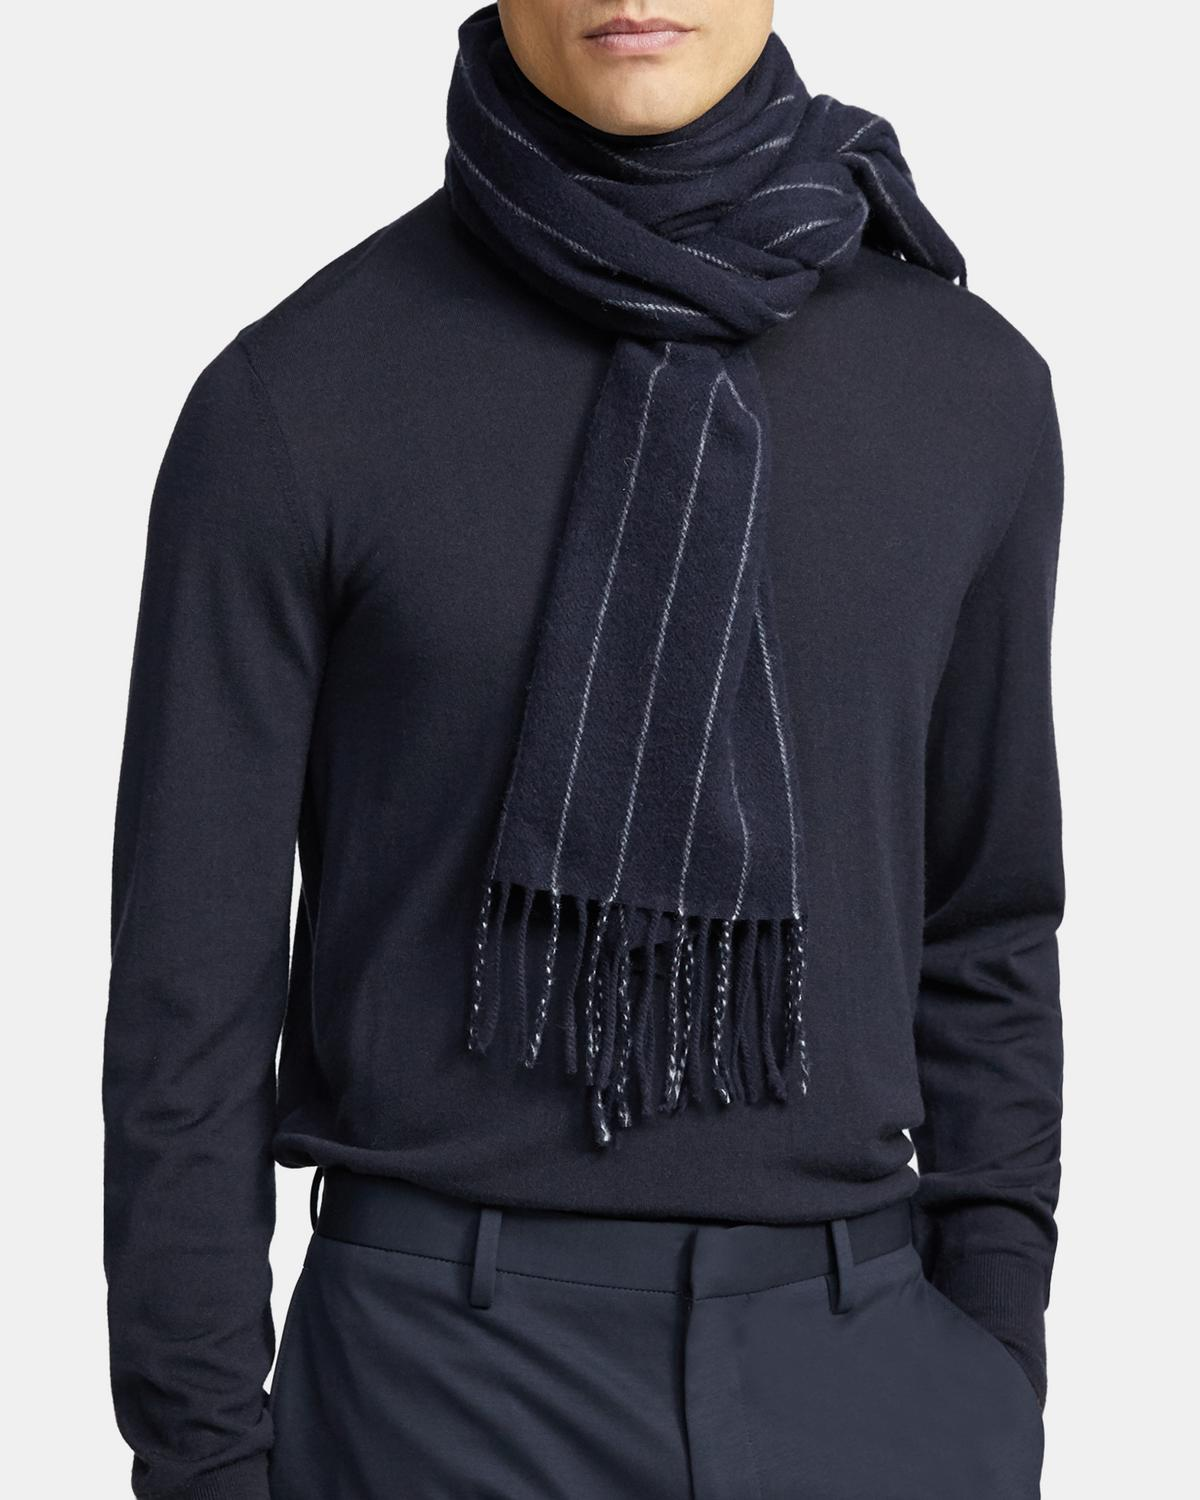 Fringe Scarf in Pinstripe Wool-Cashmere